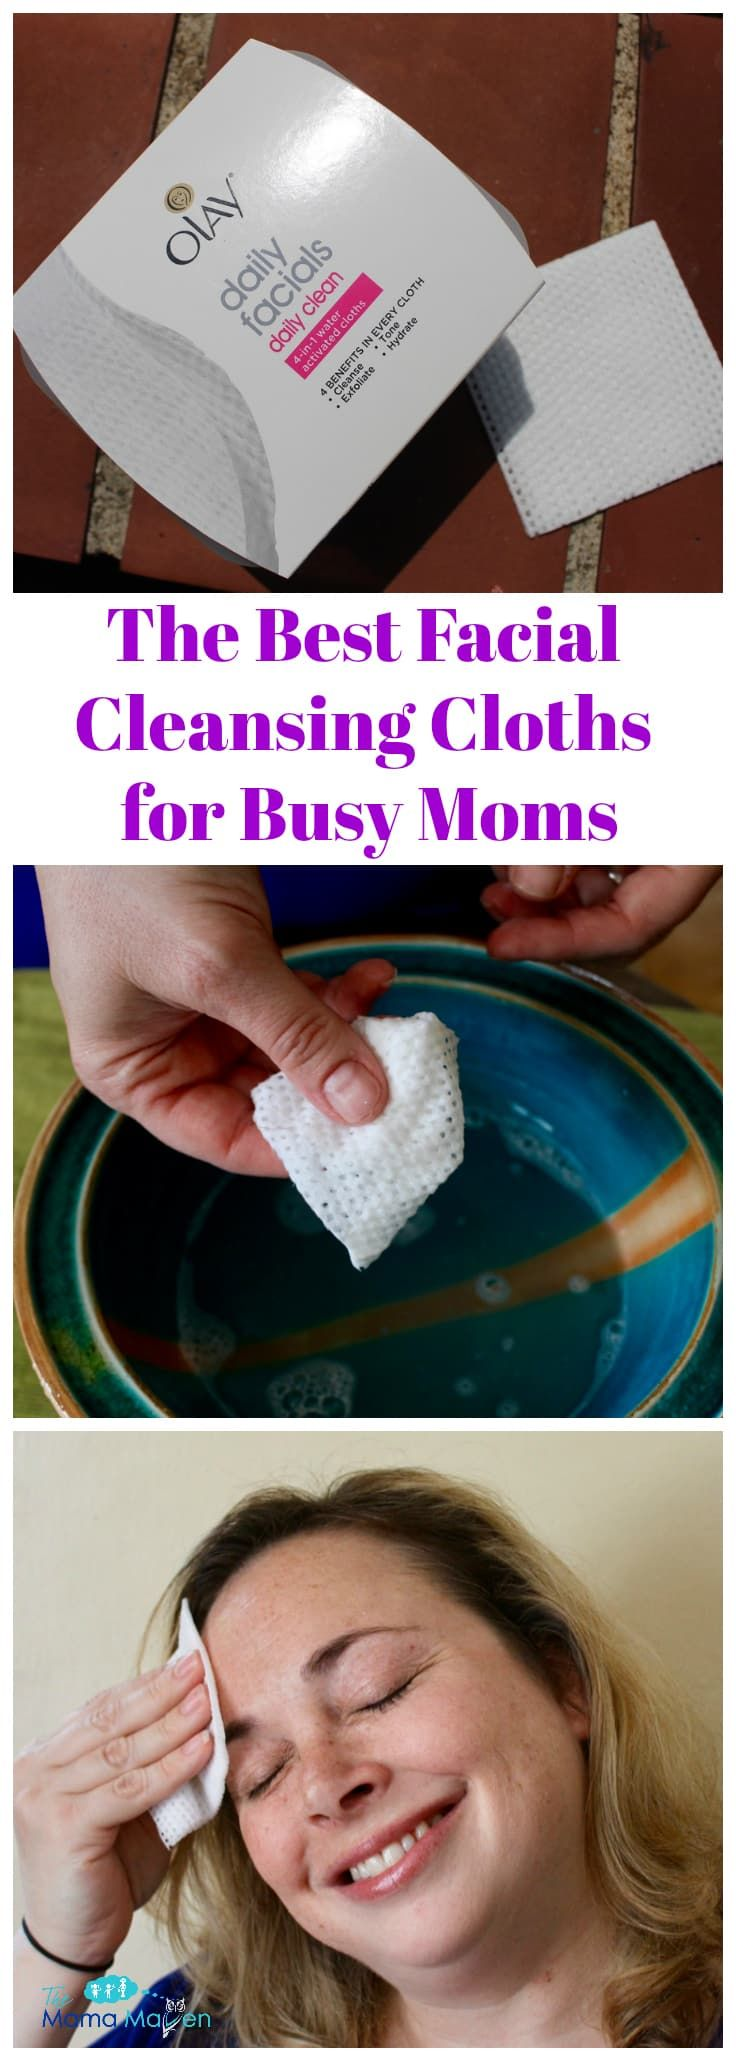 The Best Facial Cleansing Cloths For Busy Moms #AD @olay | The Mama Maven Blog